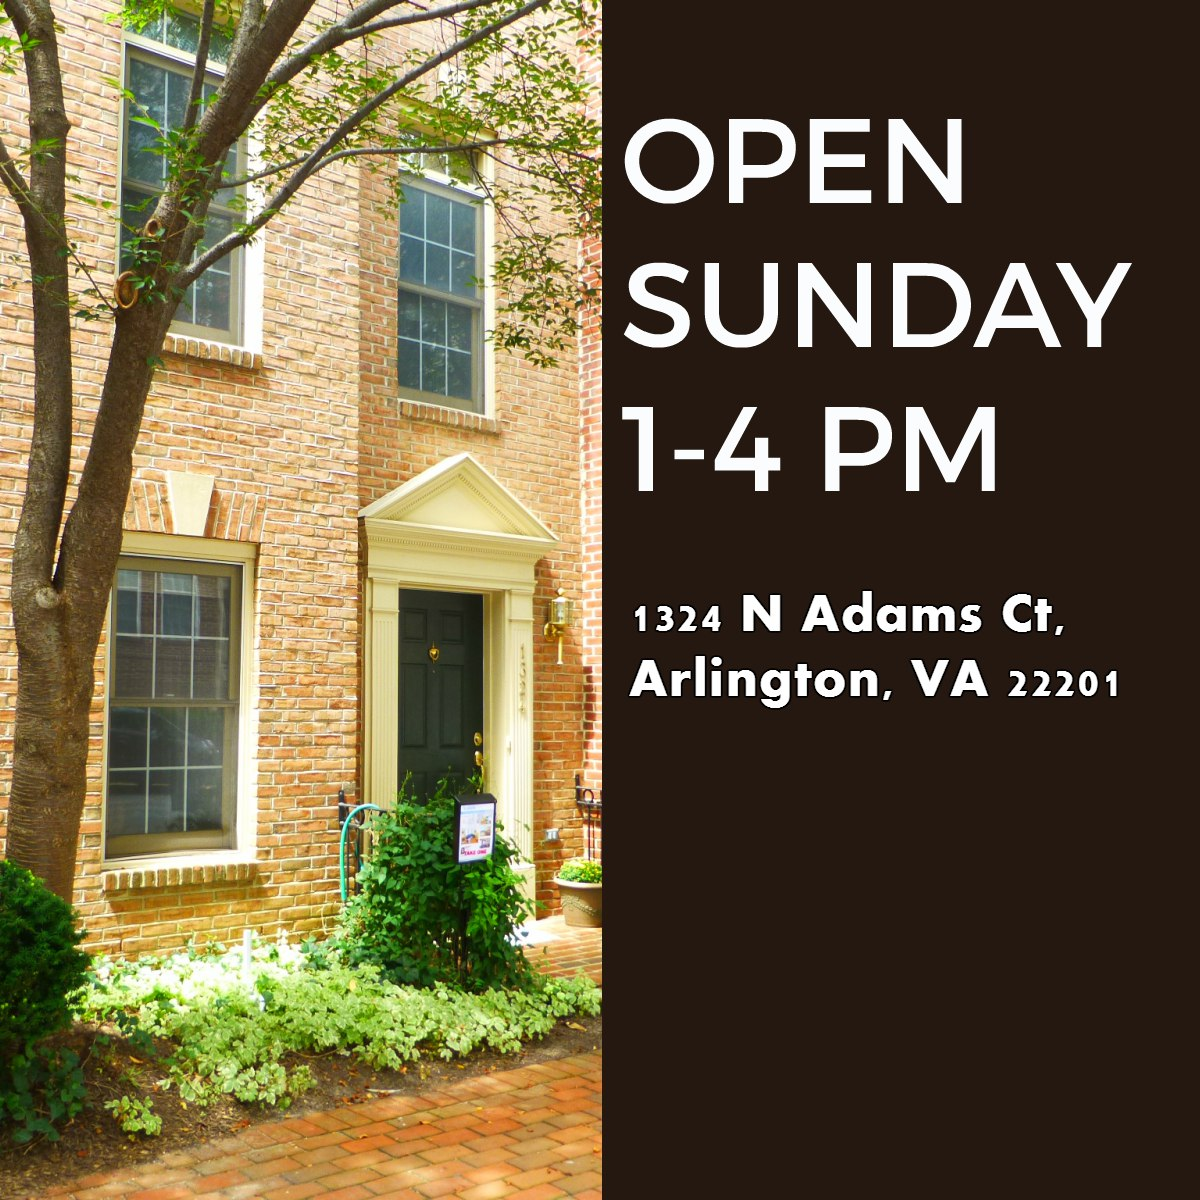 Arlington, VA OPEN SUNDAY  10/18/15!